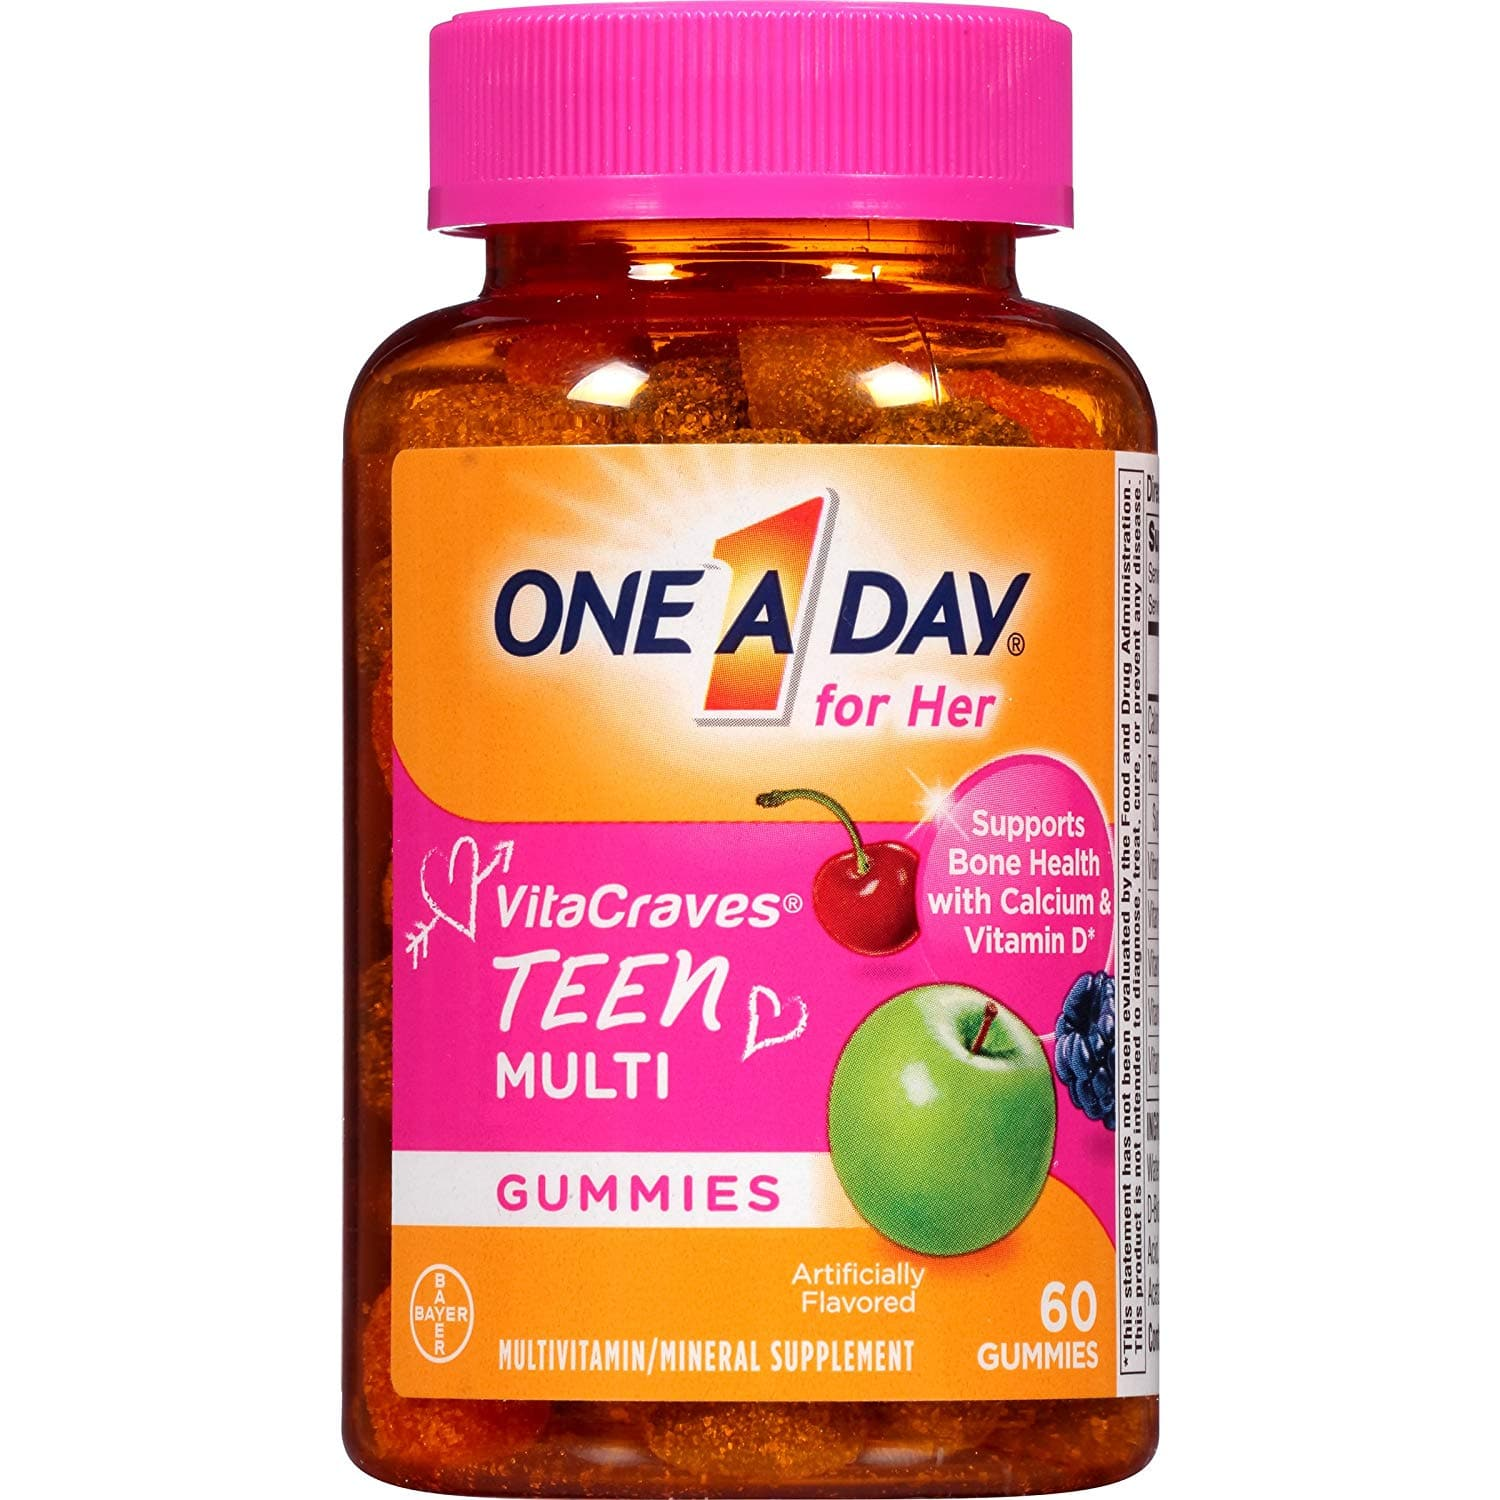 One A Day VitaCraves Teen for Her, 60 ct $3.26